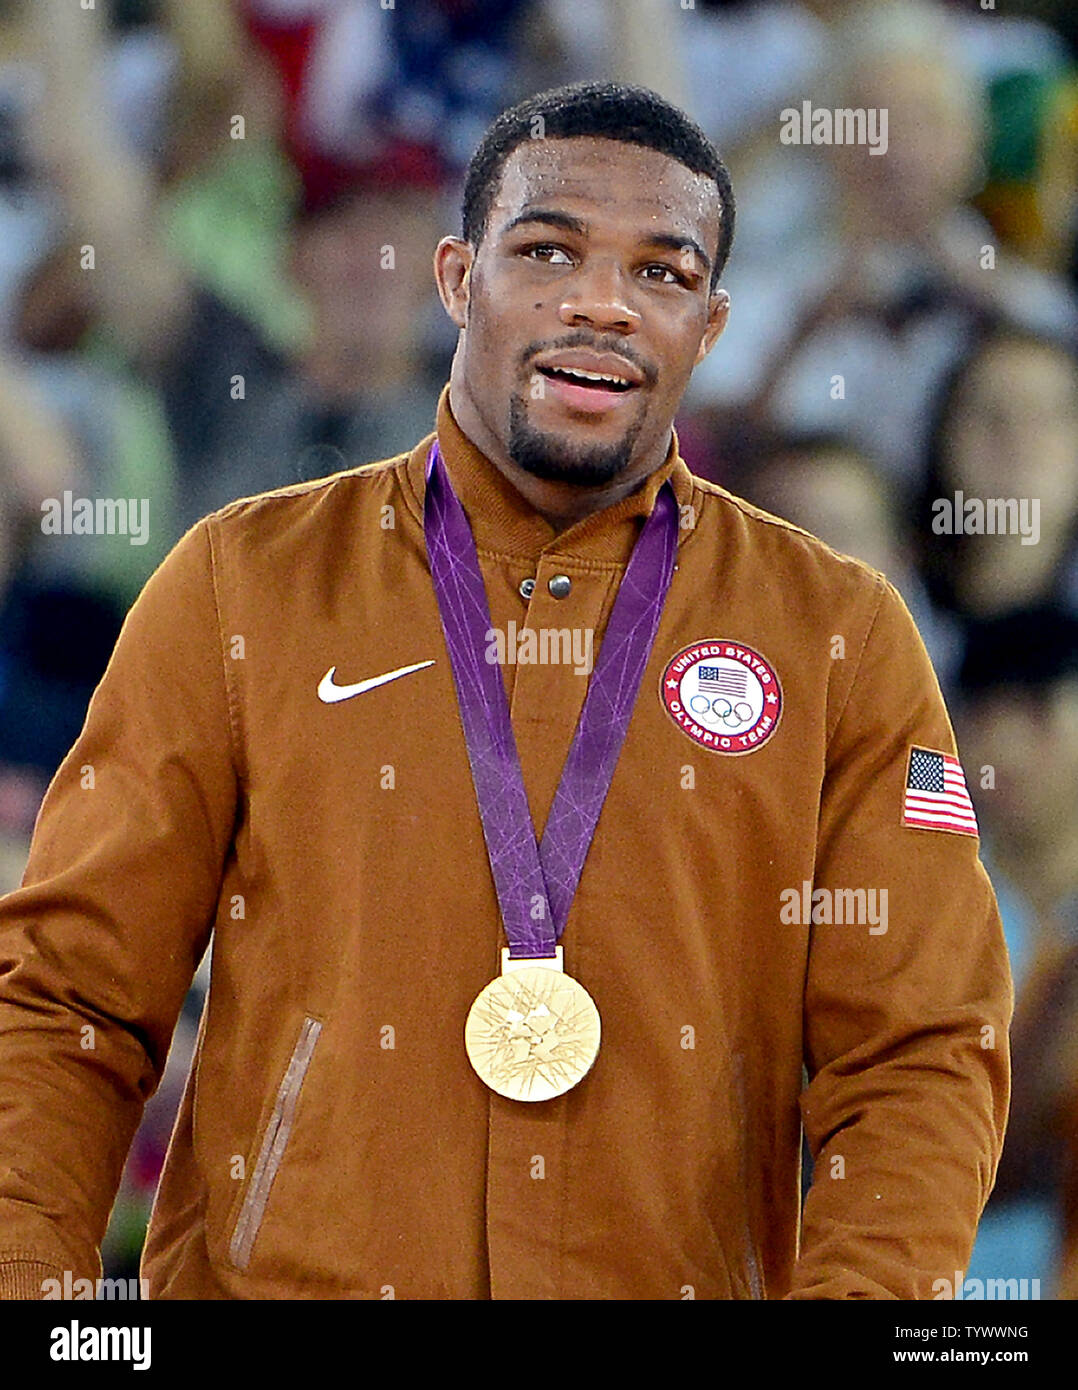 Jordan Ernest Burroughs of the United States of America wears the Gold Medal he earned in the Men's 74kg Freestyle Wrestling at the London 2012 Summer Olympics on August 10, 2012 in London.  UPI/Ron Sachs - Stock Image